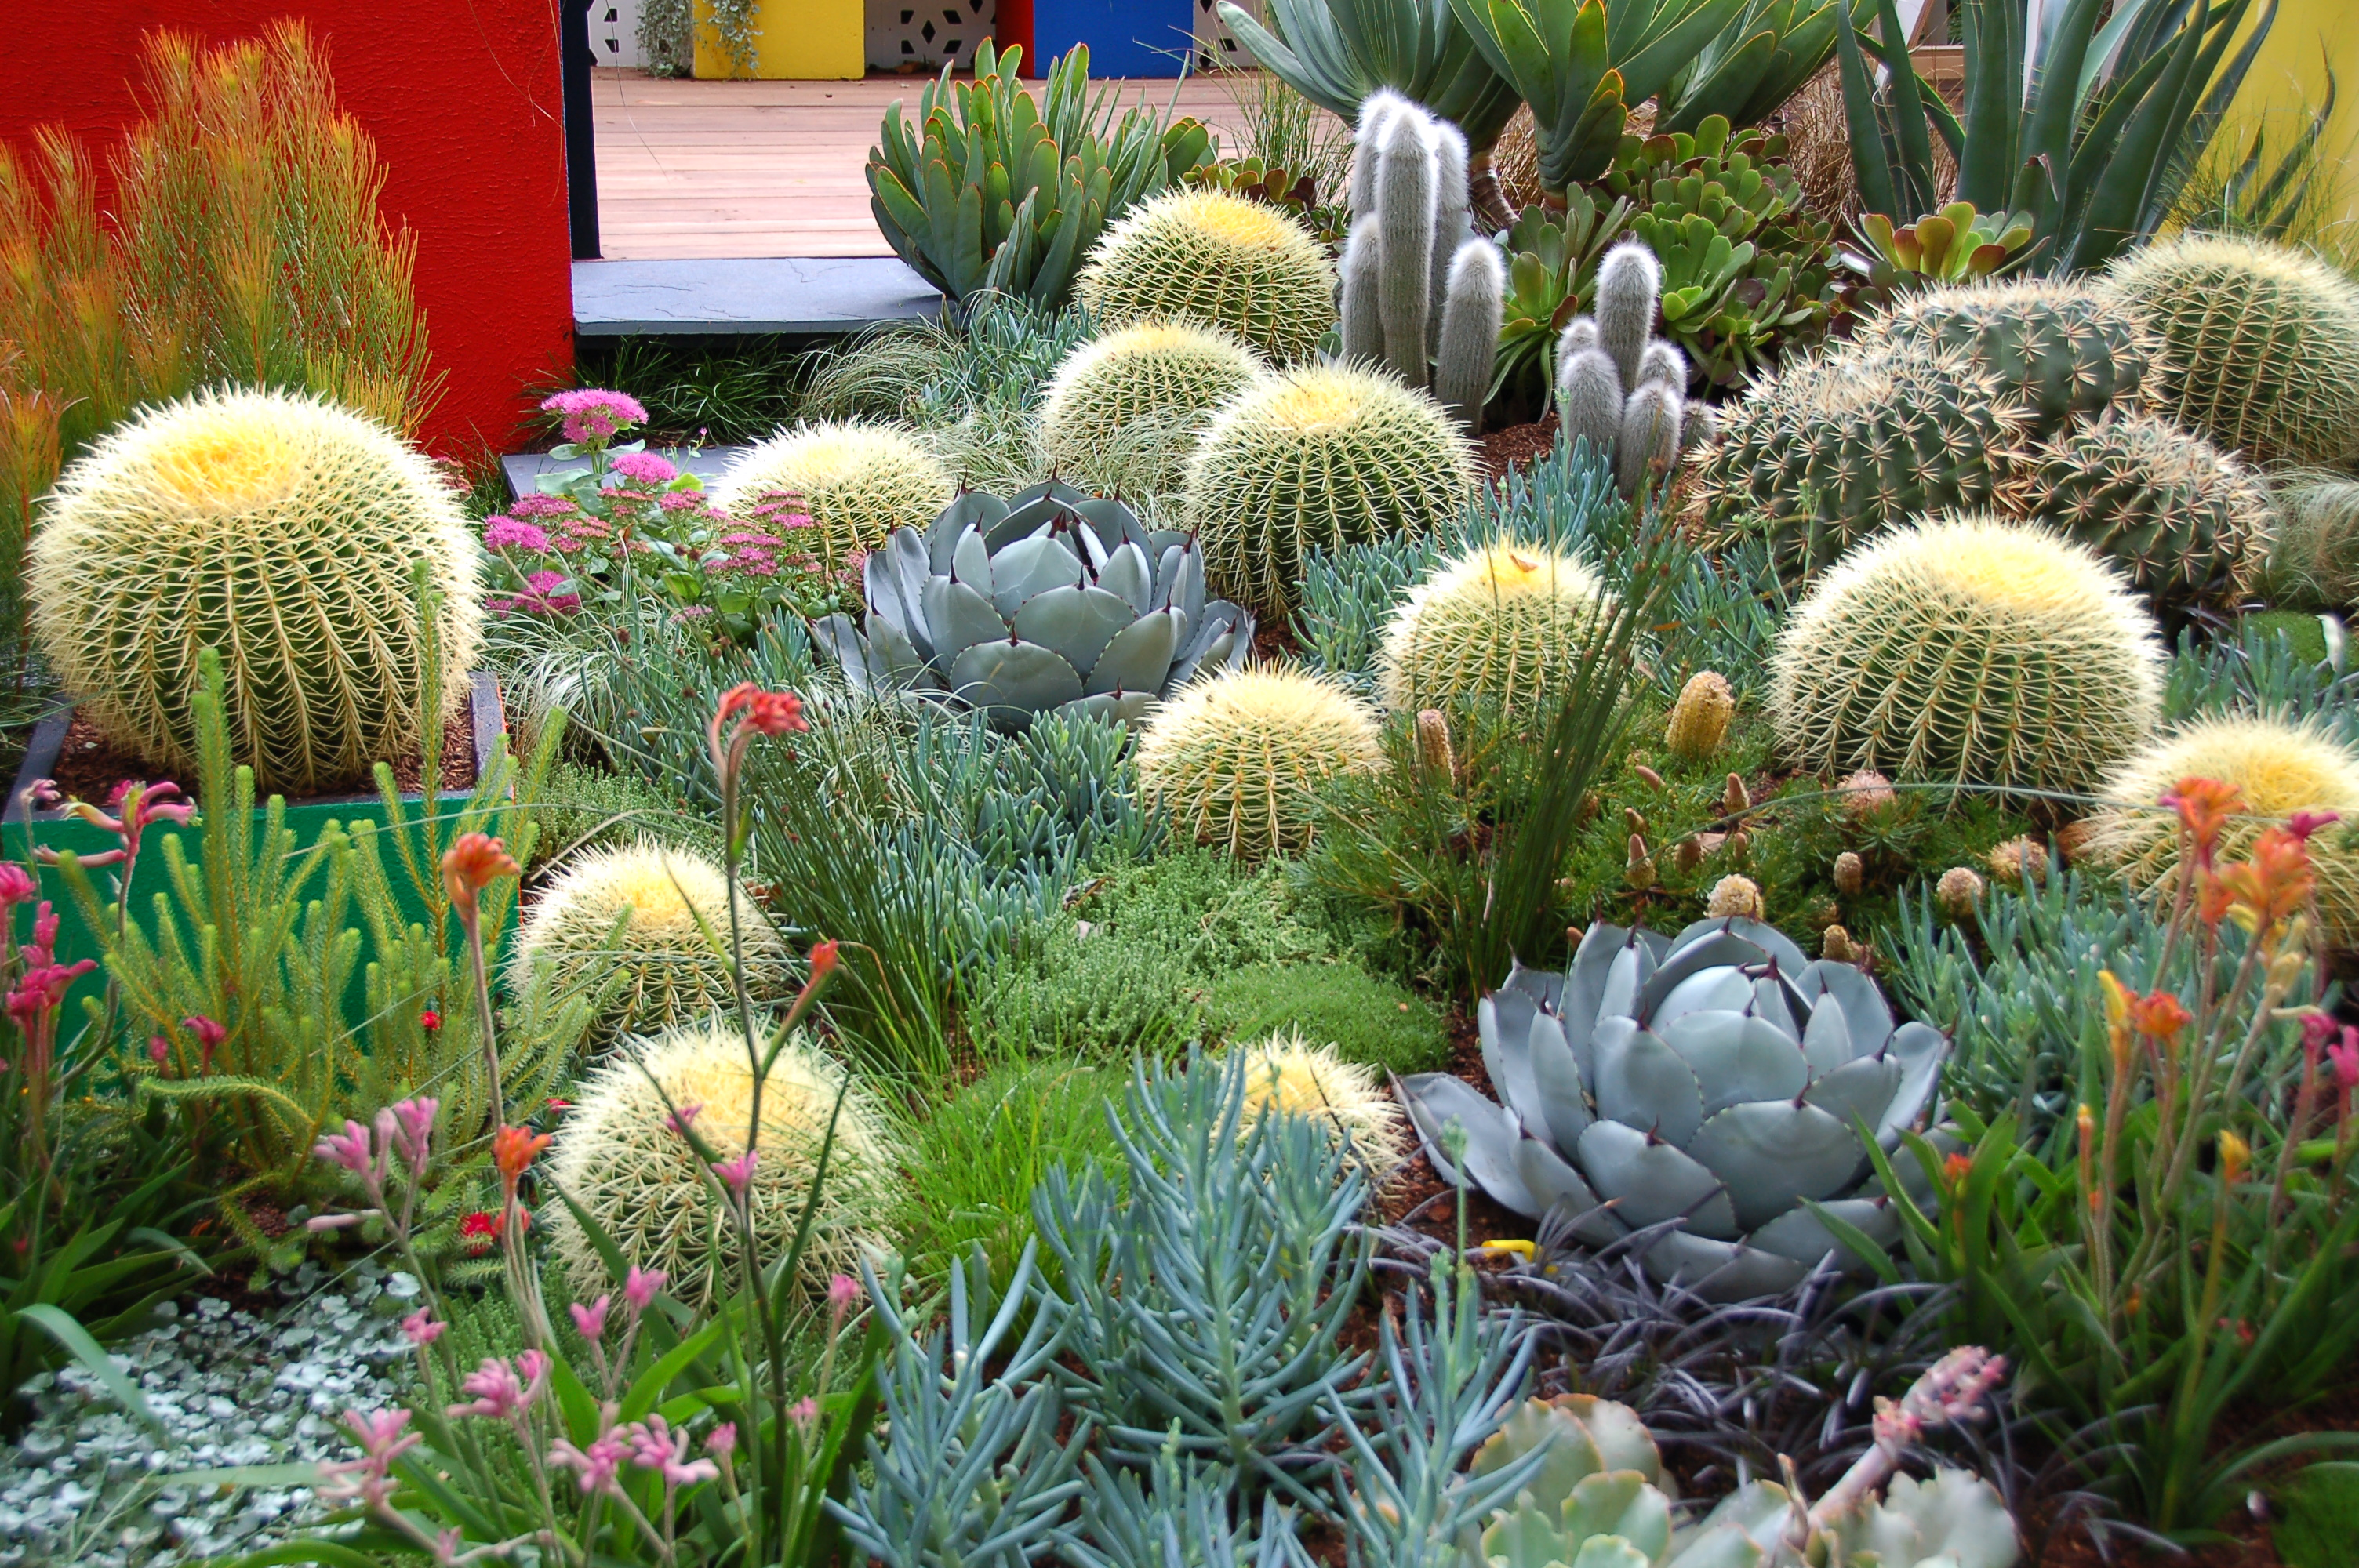 file:2013 melbourne international flower and garden show (8584069621